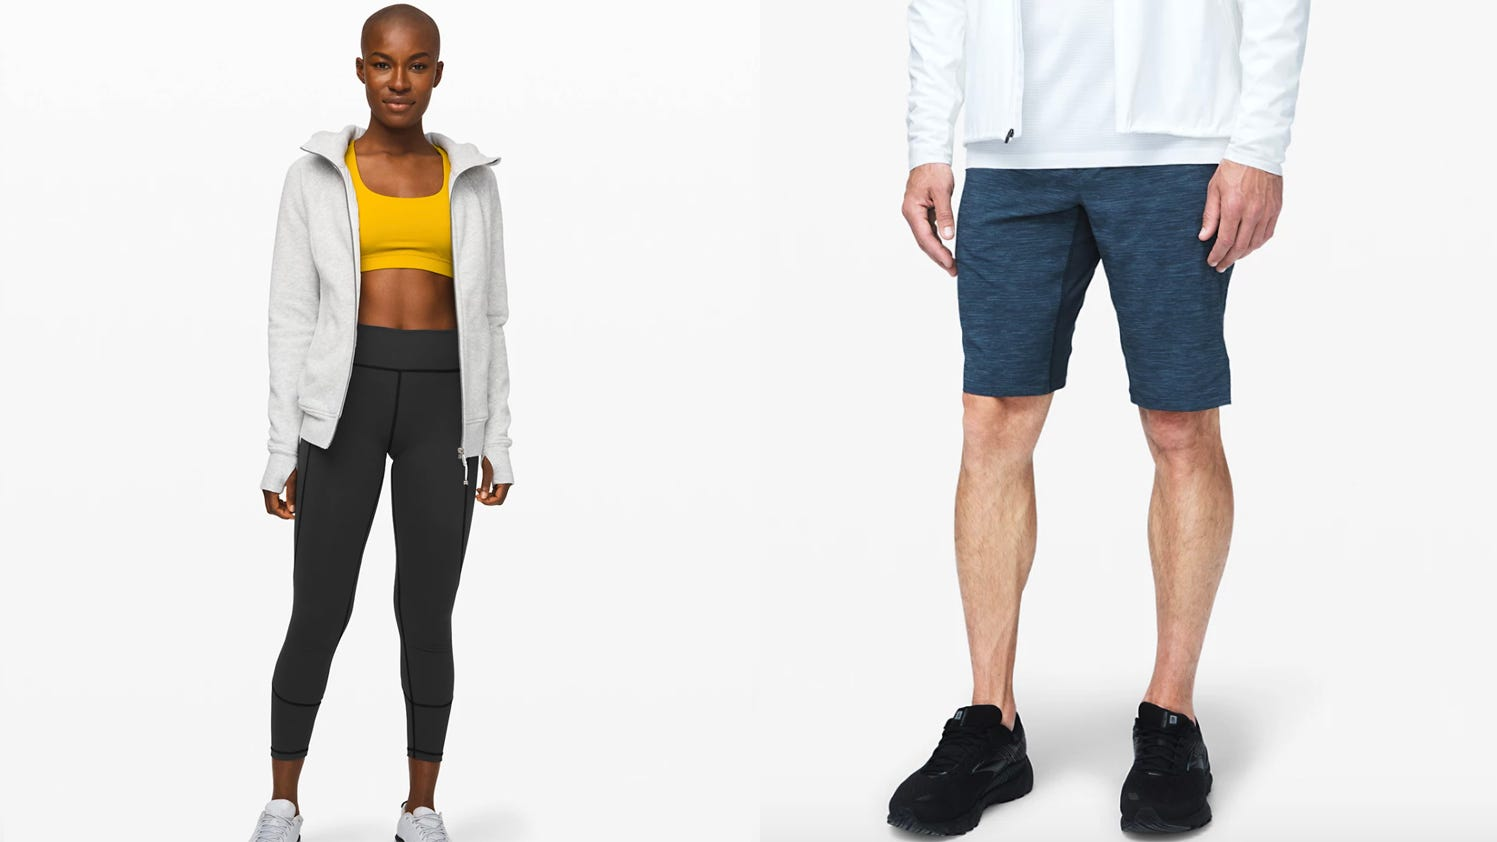 The best deals on leggings, shorts, tanks, and more